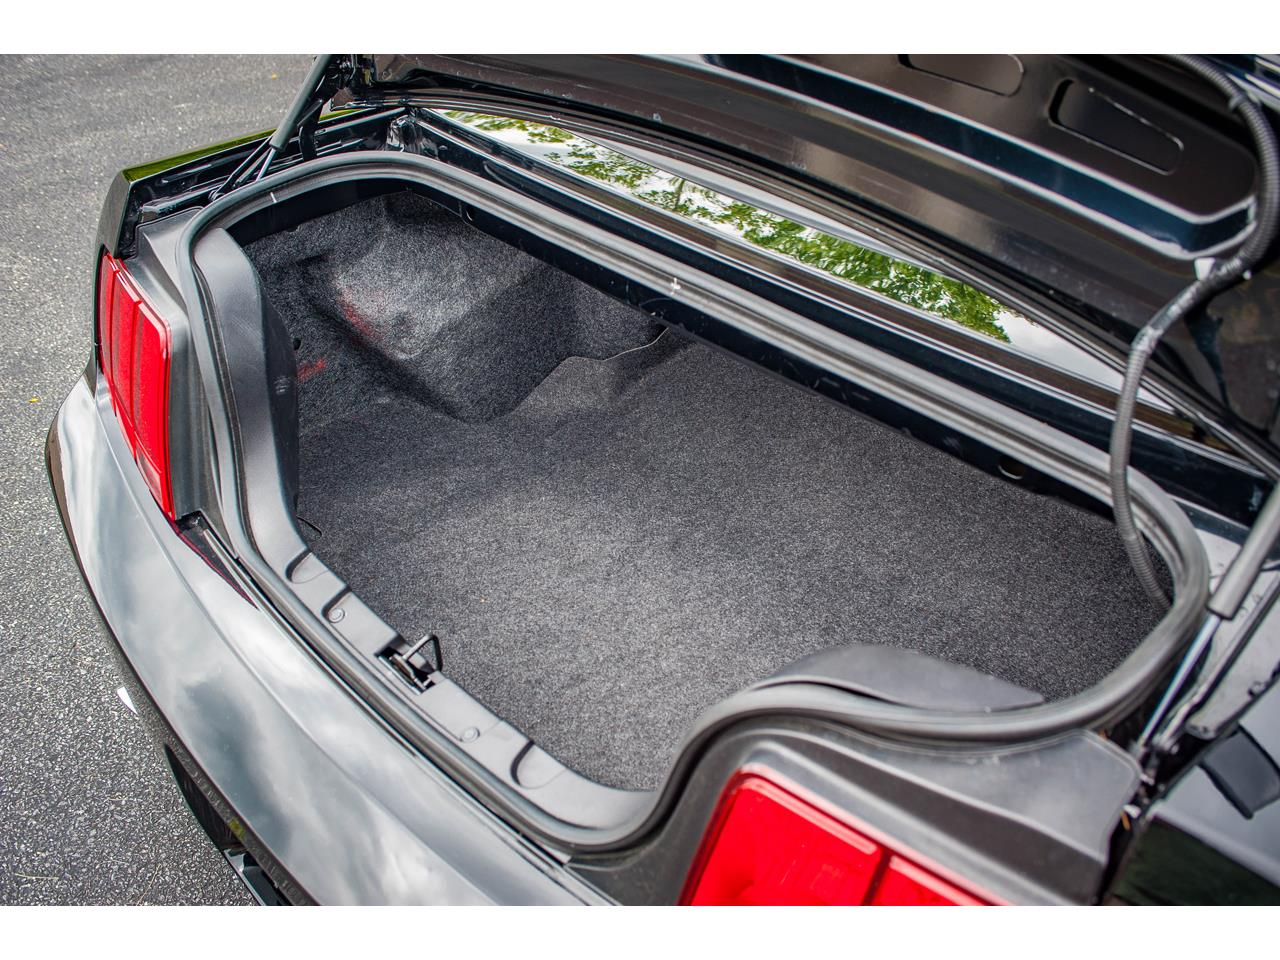 Large Picture of 2007 Ford Mustang - $40,500.00 Offered by Gateway Classic Cars - St. Louis - QB98